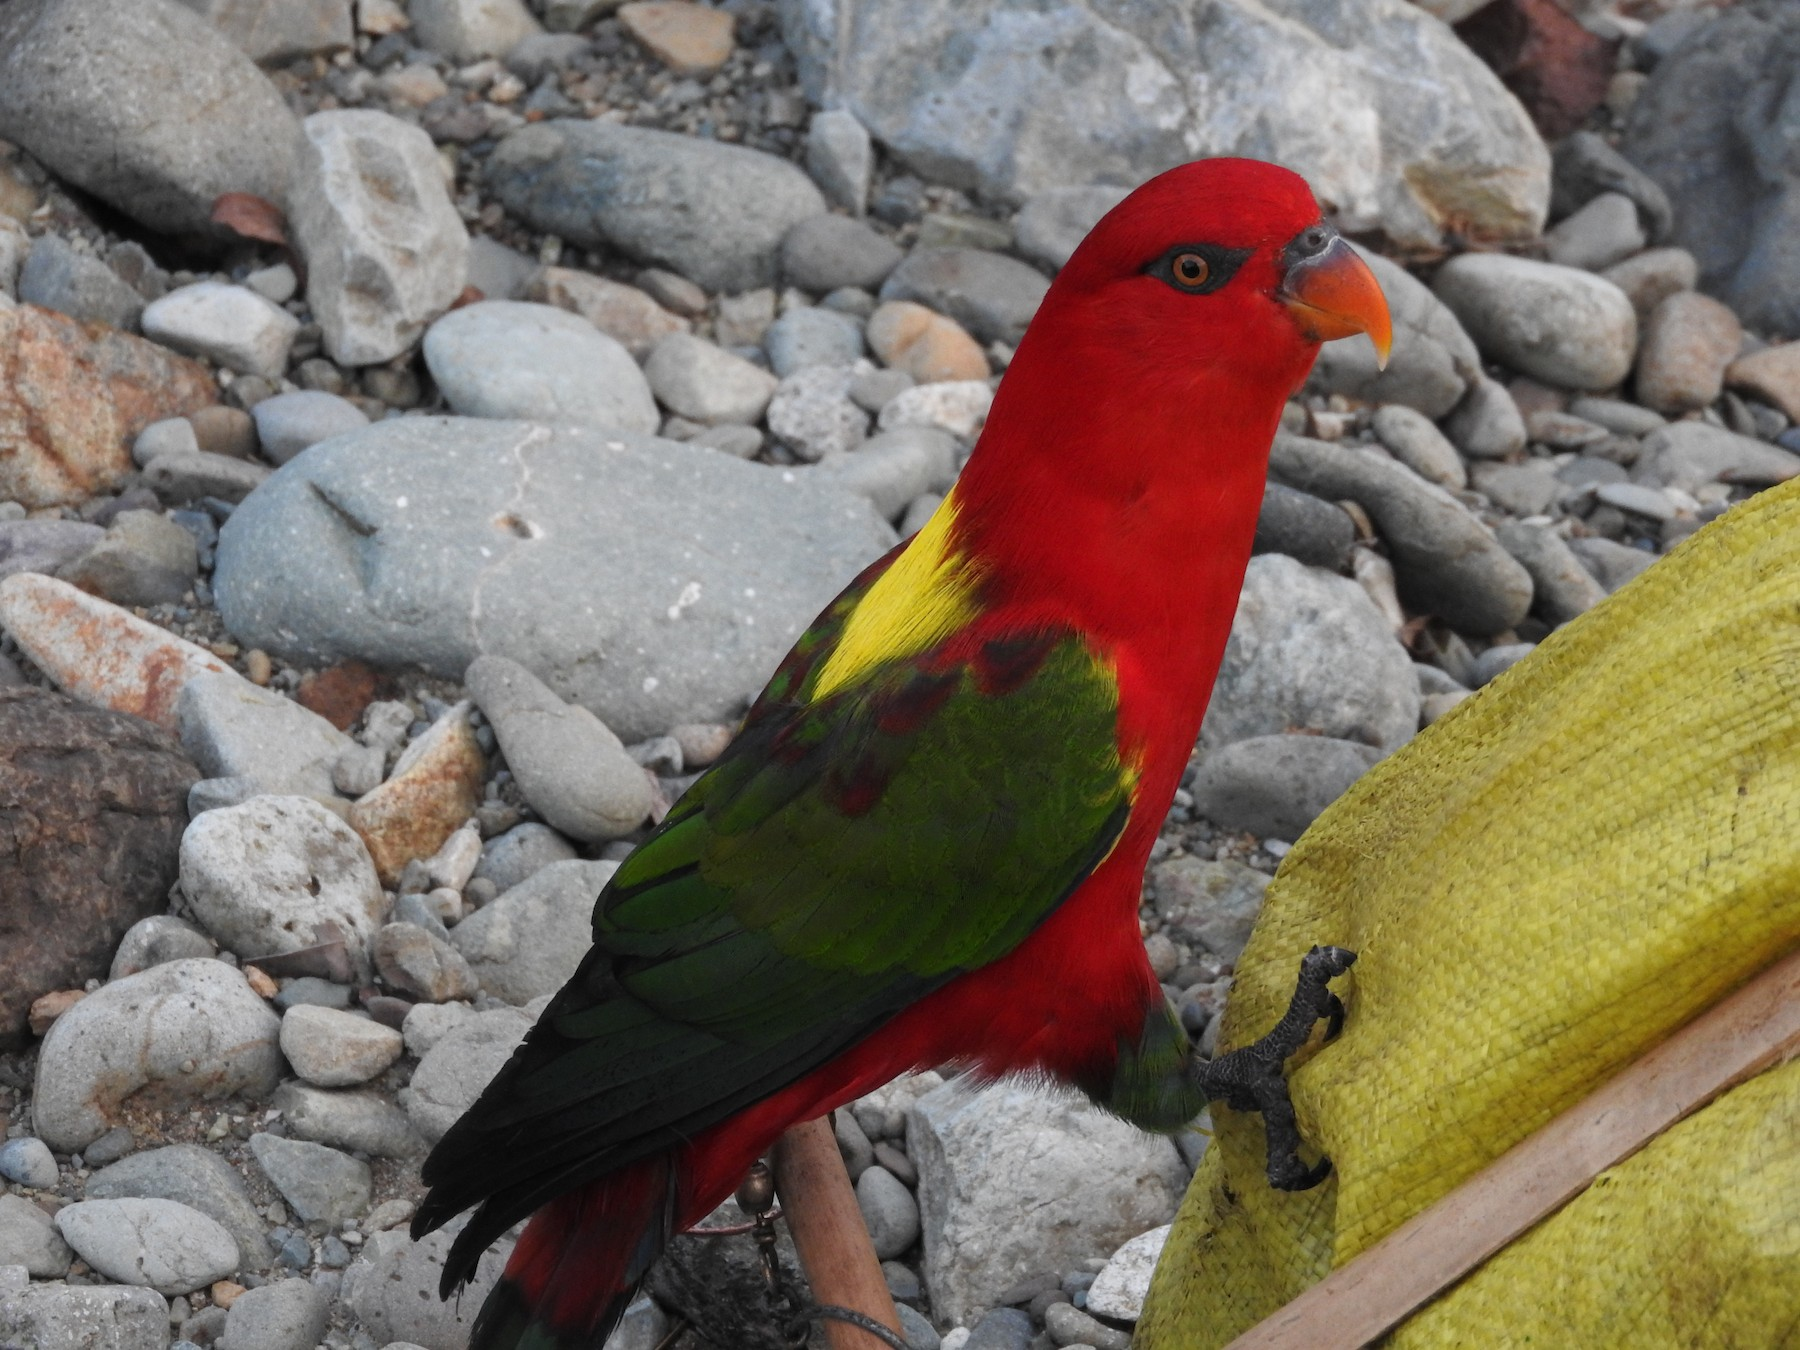 Chattering Lory - Pam Rasmussen